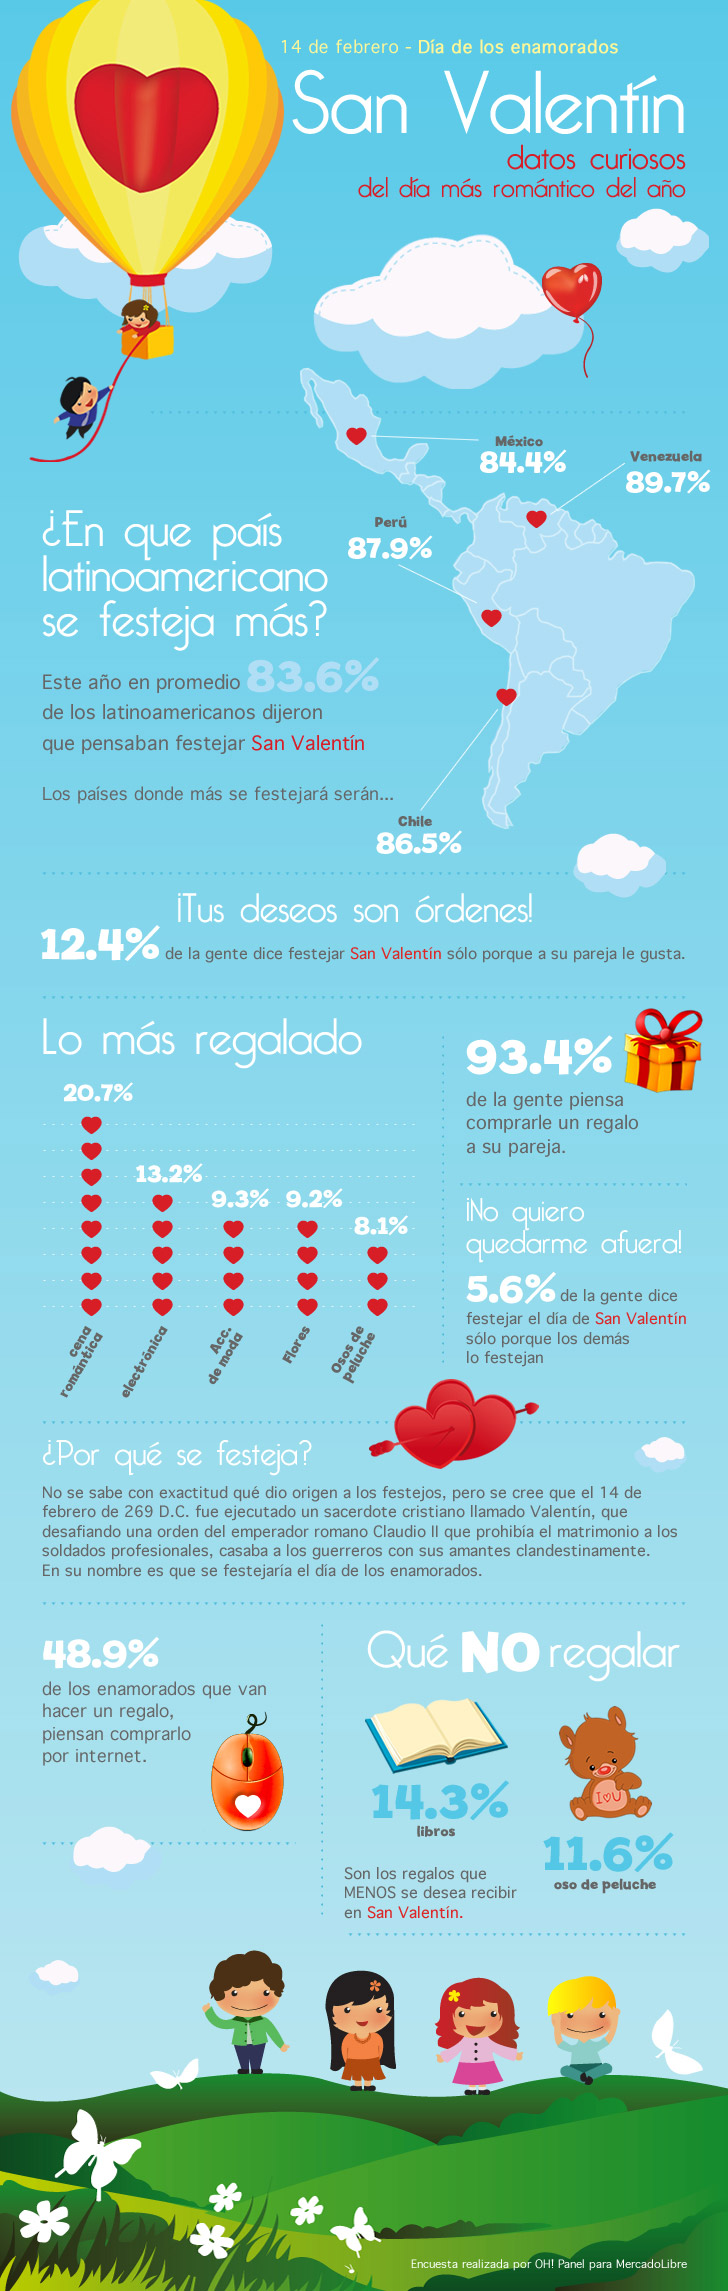 Datos curiosos de San Valentn